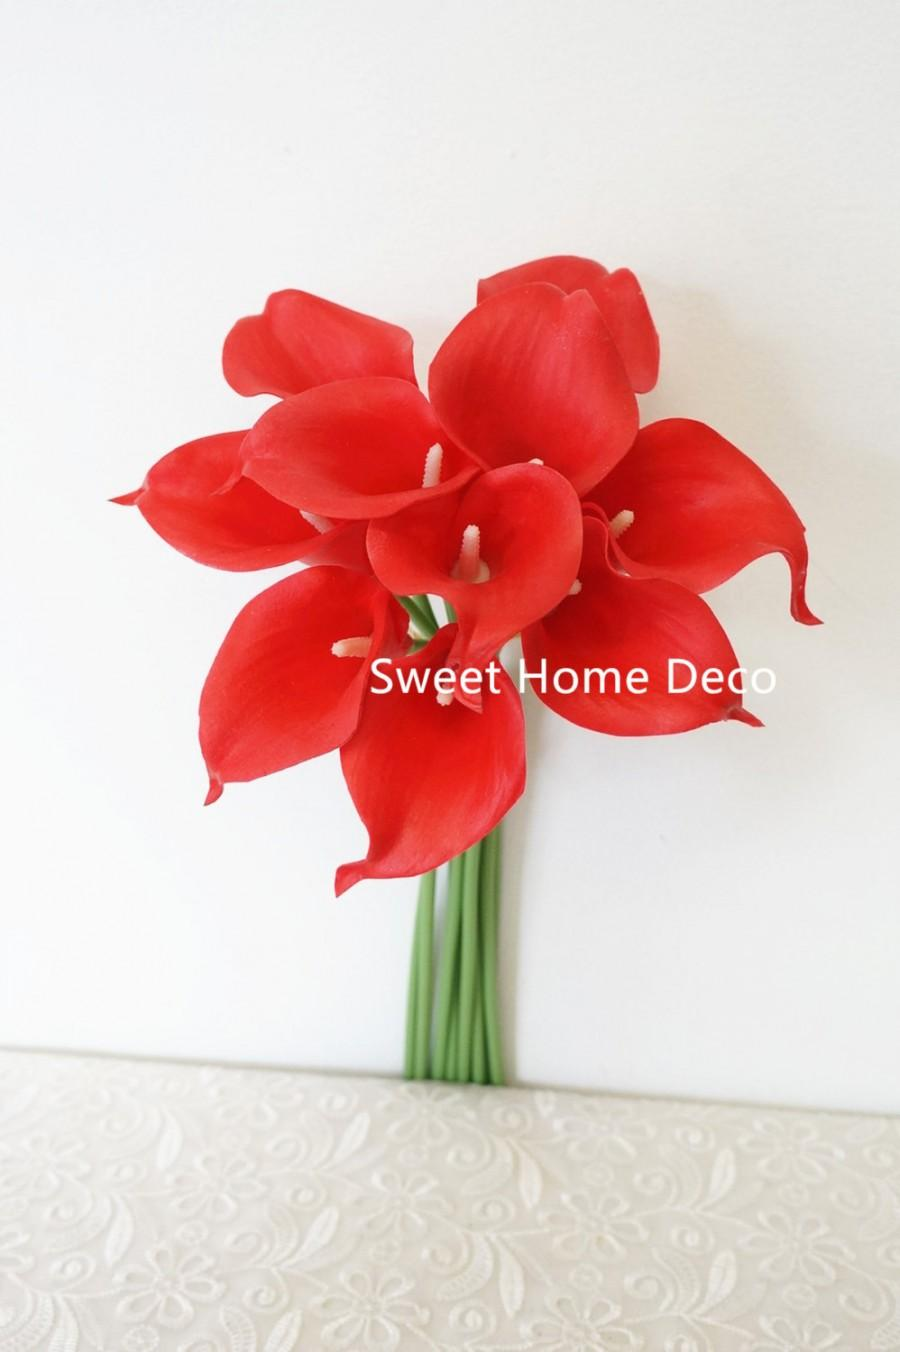 "Mariage - JennysFlowerShop 15"" Latex Real Touch Artificial Calla Lily 10 Stems Flower Bouquet for Wedding/ Home Red"